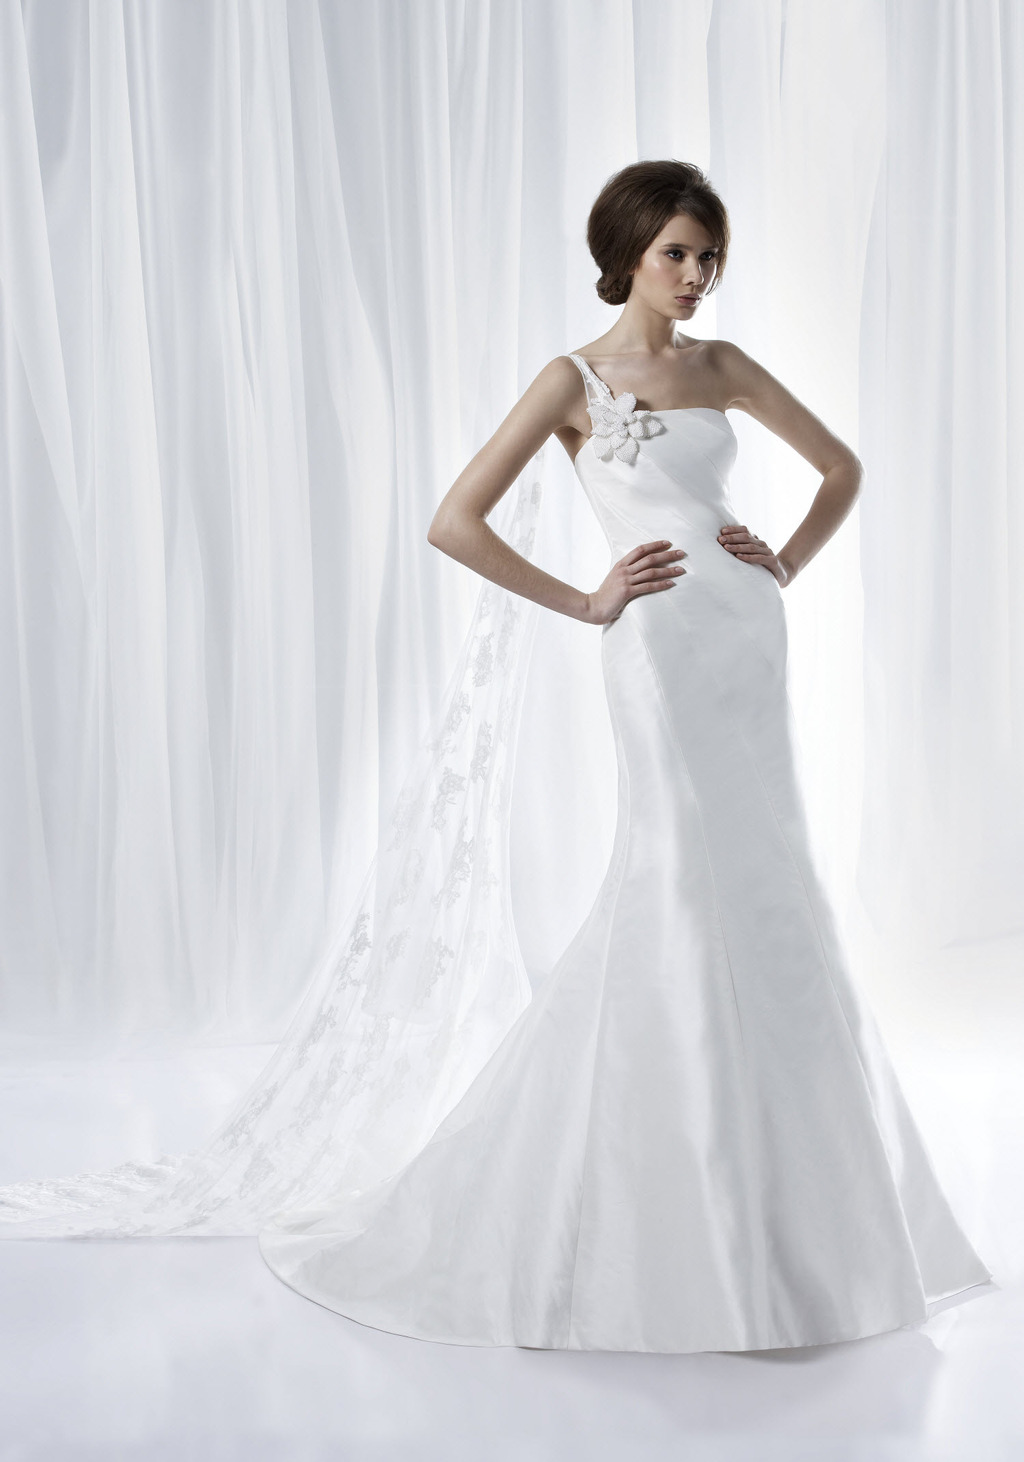 Perfect for the chic beach bride this white mermaid